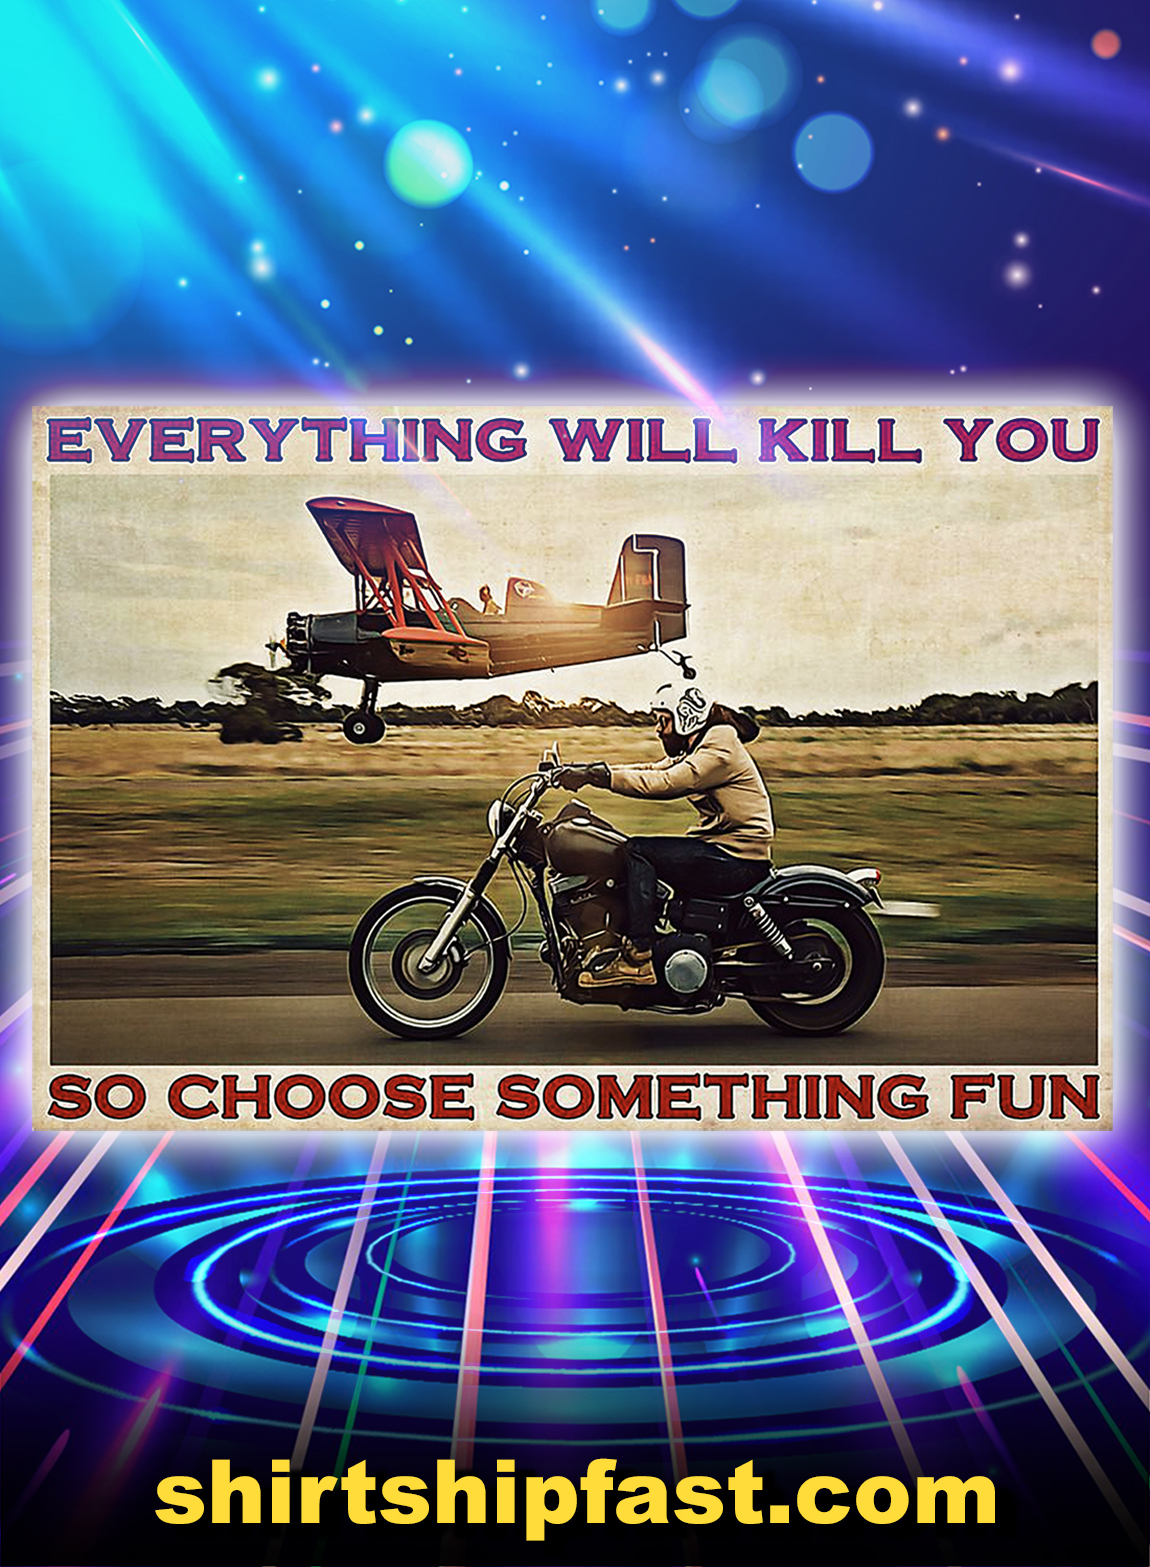 Motorbike planes everything will kill you so choose something fun poster - A3